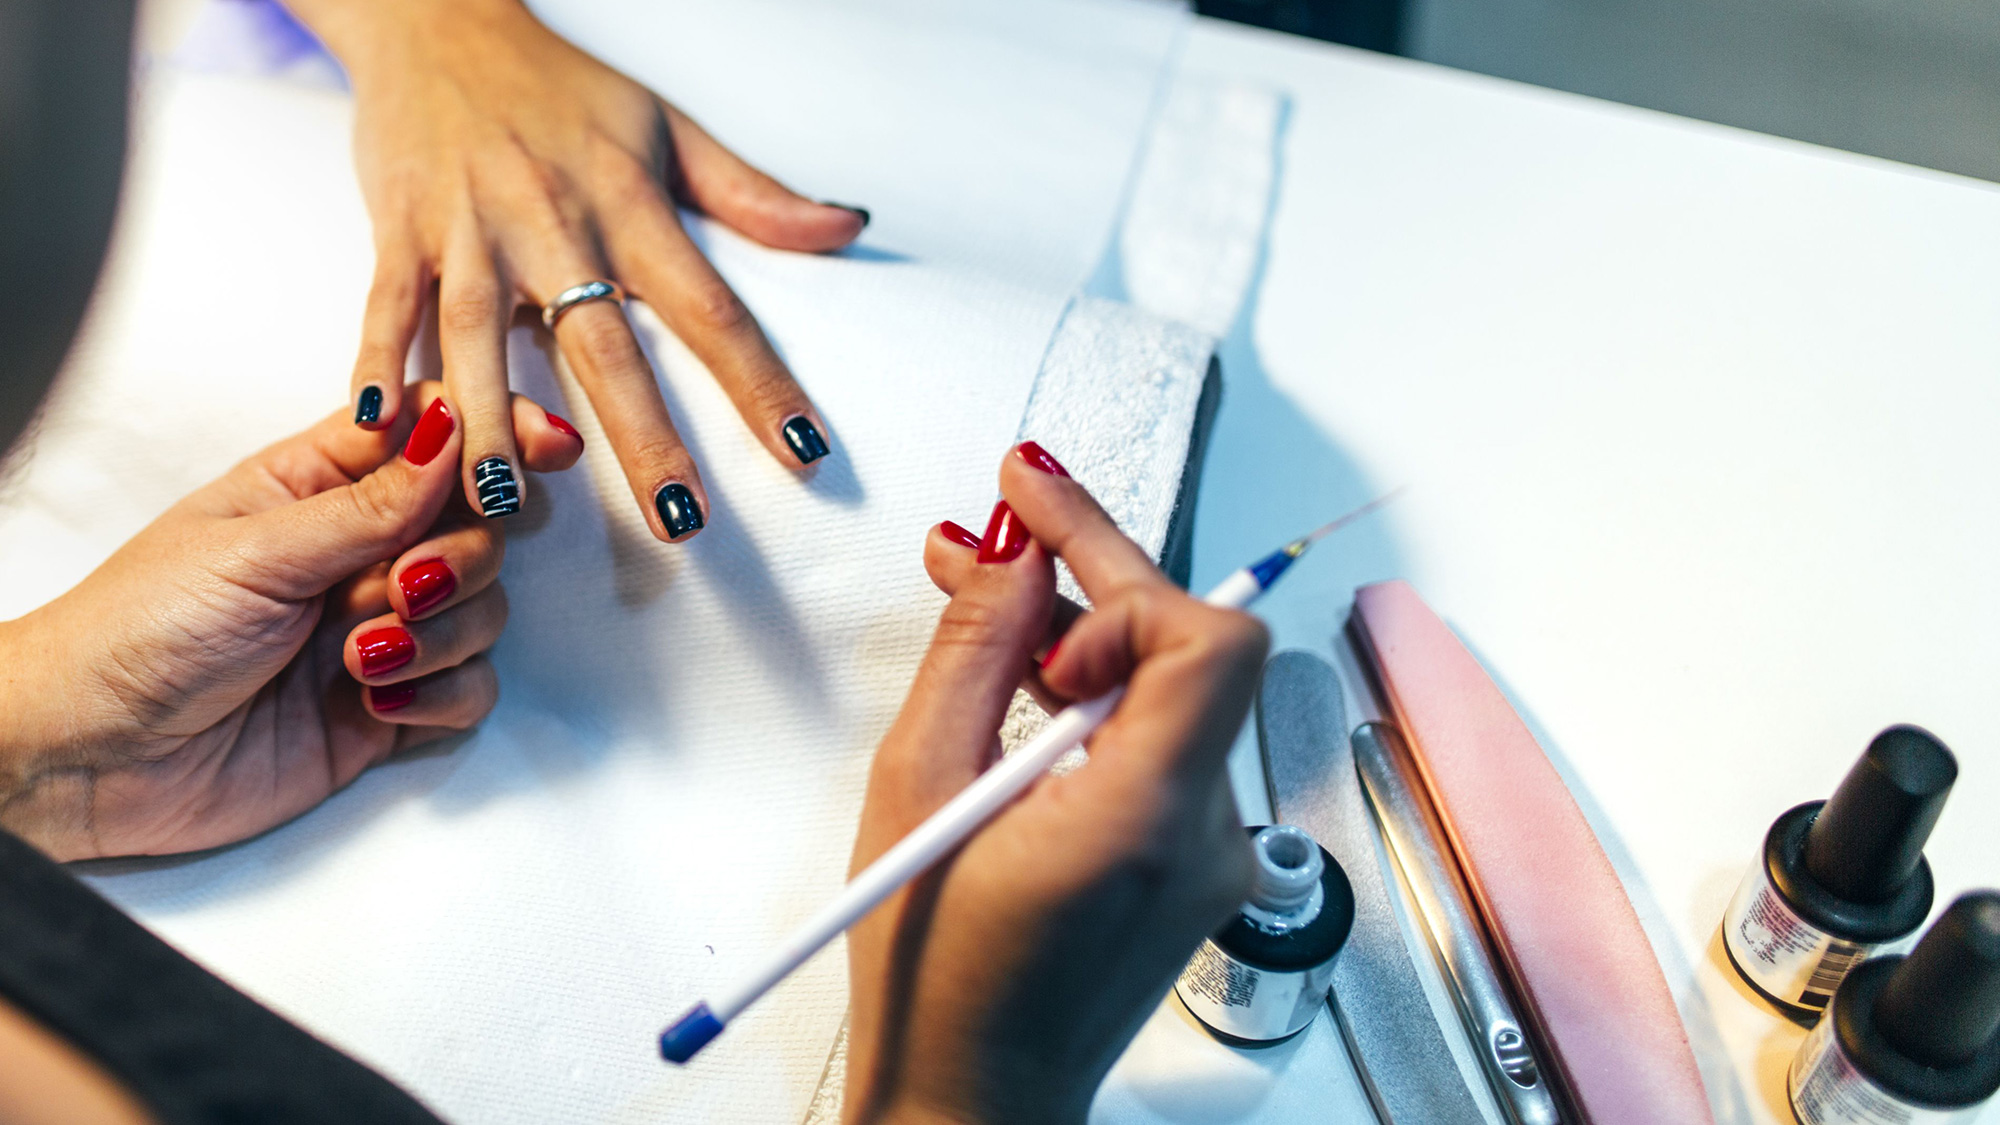 Best Nail Salons In London For The Best Manicures In The Captial